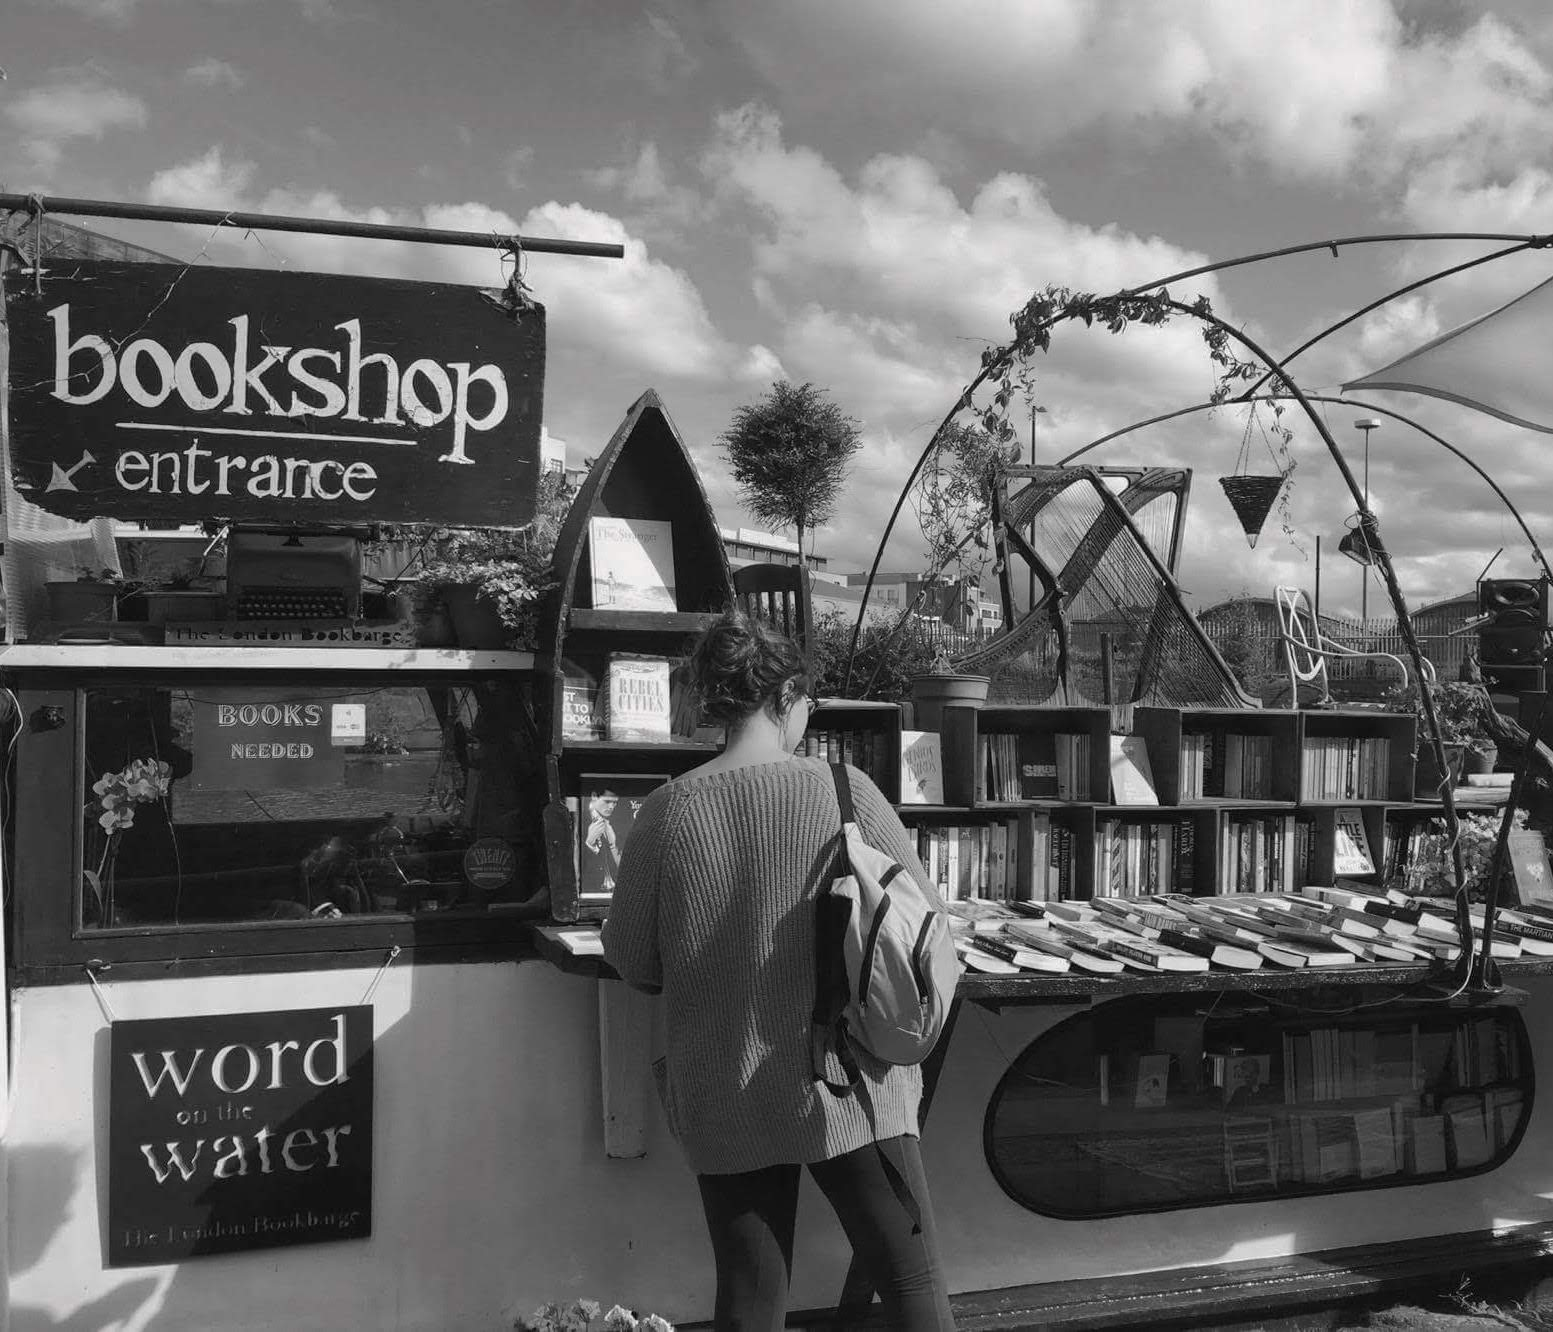 A woman looking at books on a canal boat bookshop